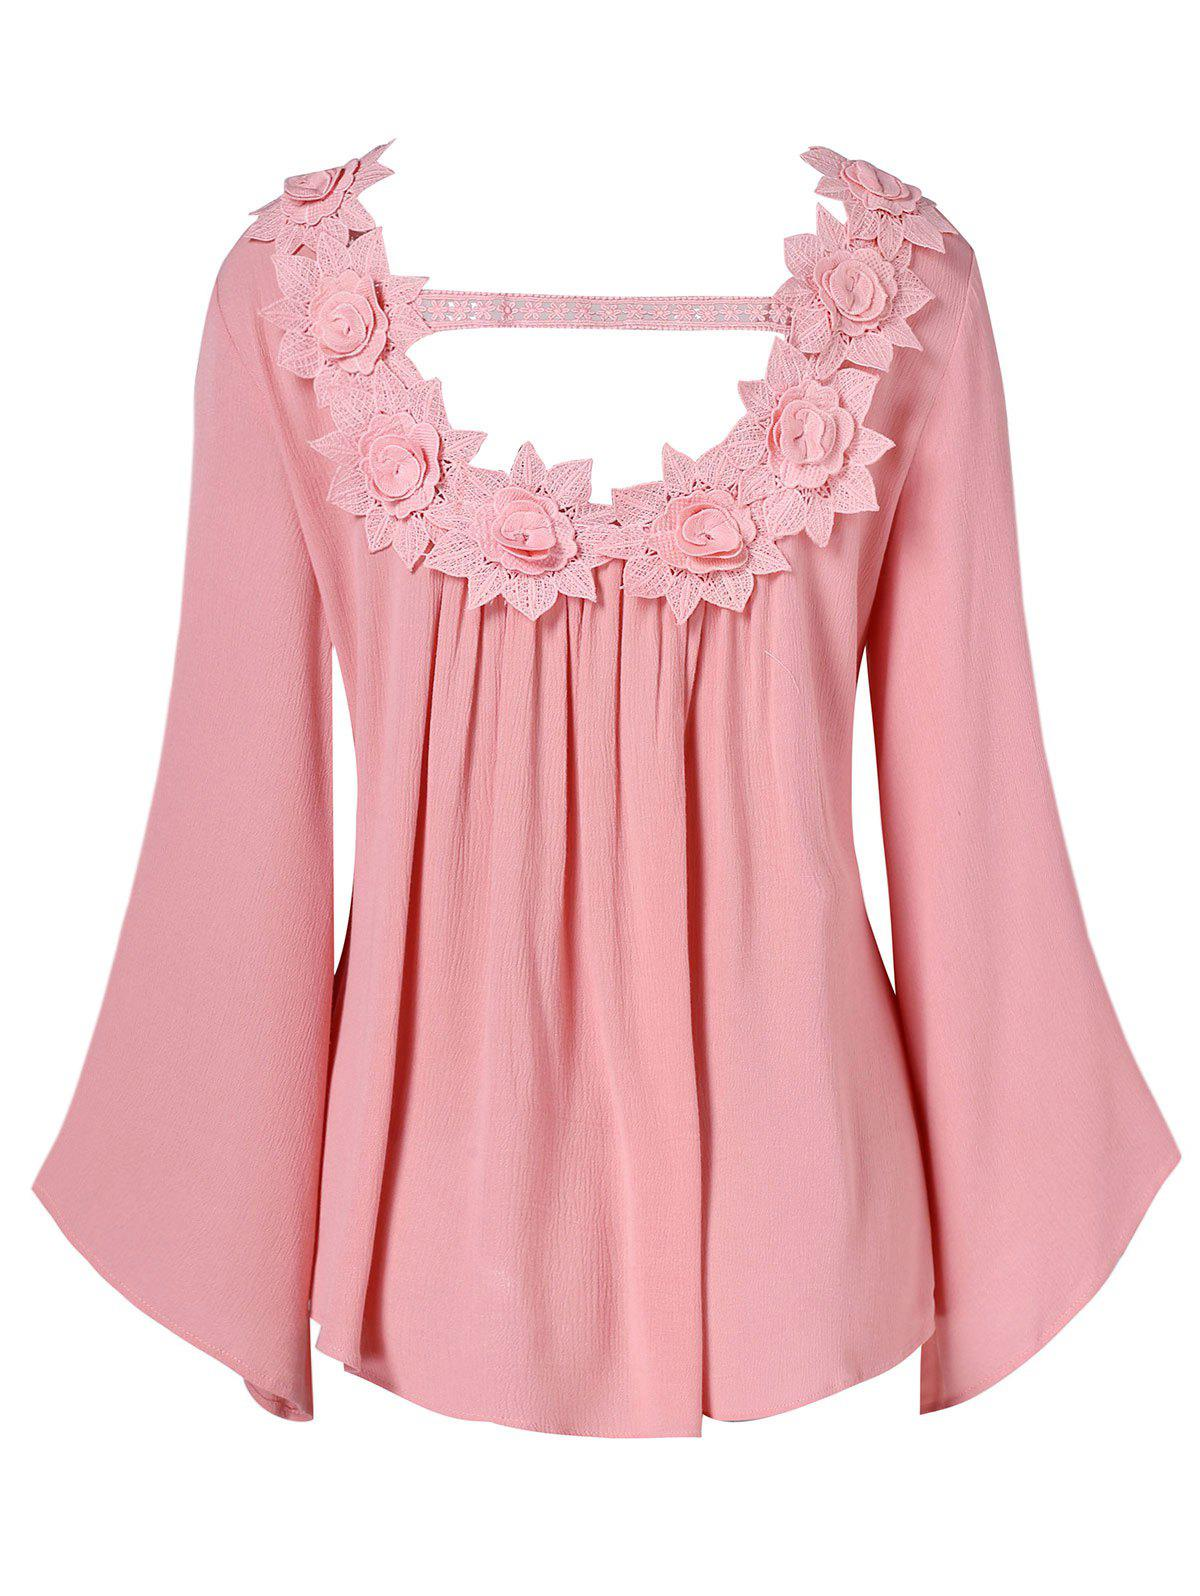 Long Sleeve Floral Applique Hollow Out Top - PIG PINK M